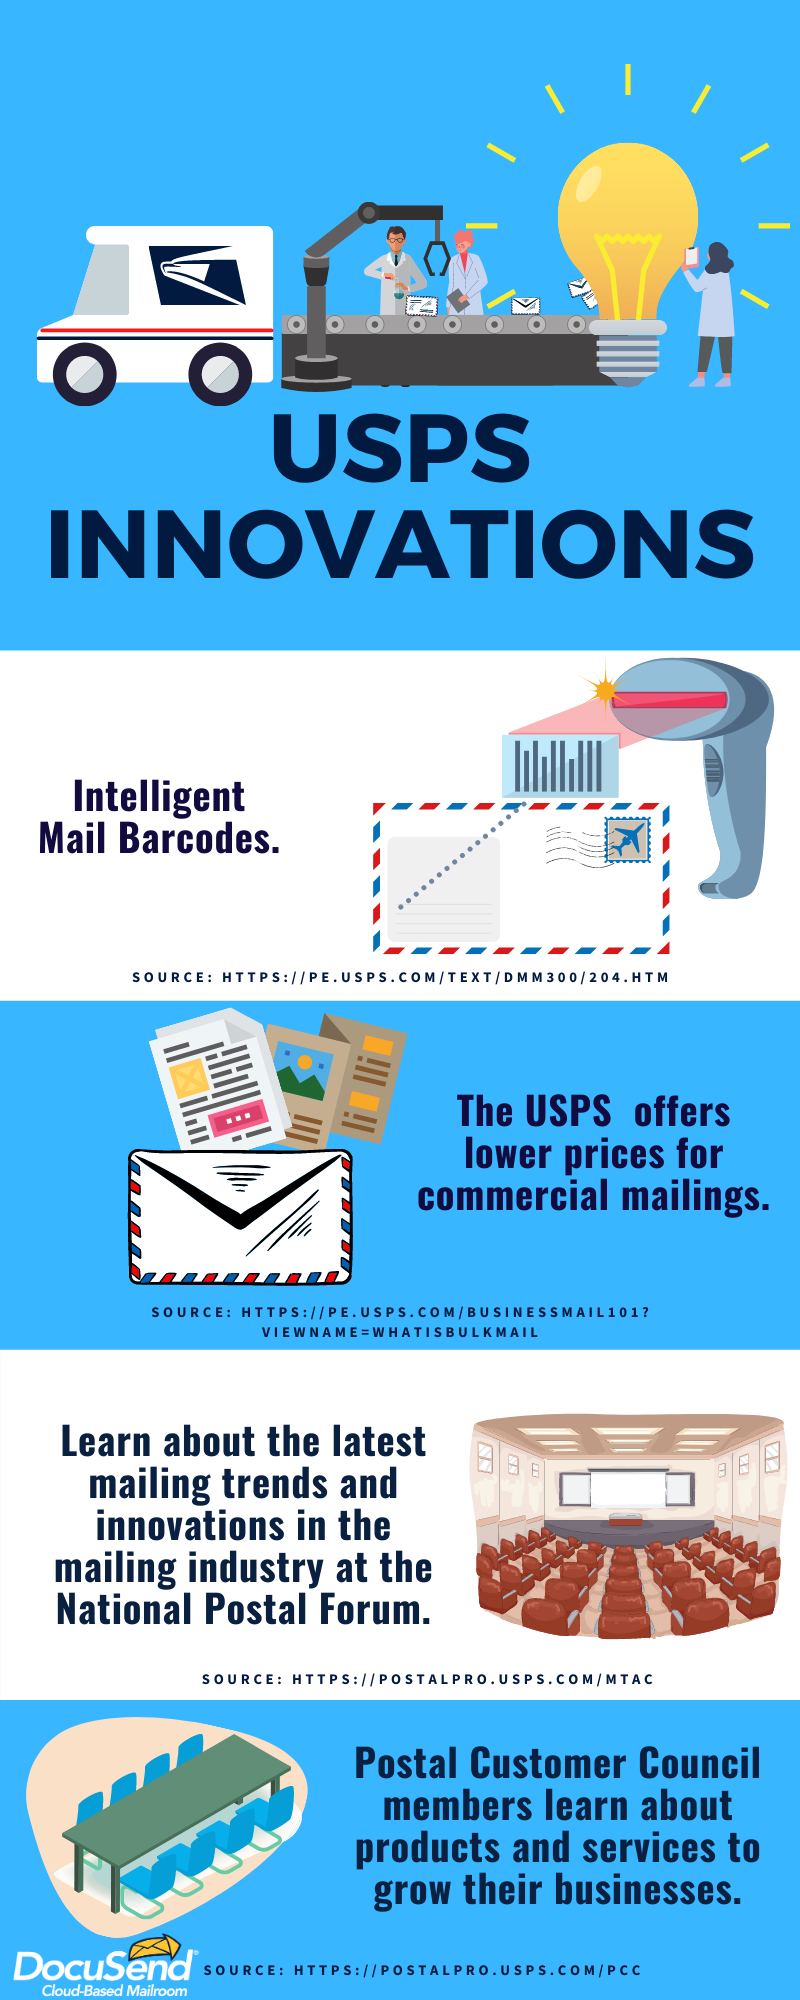 USPS innovation in the mail